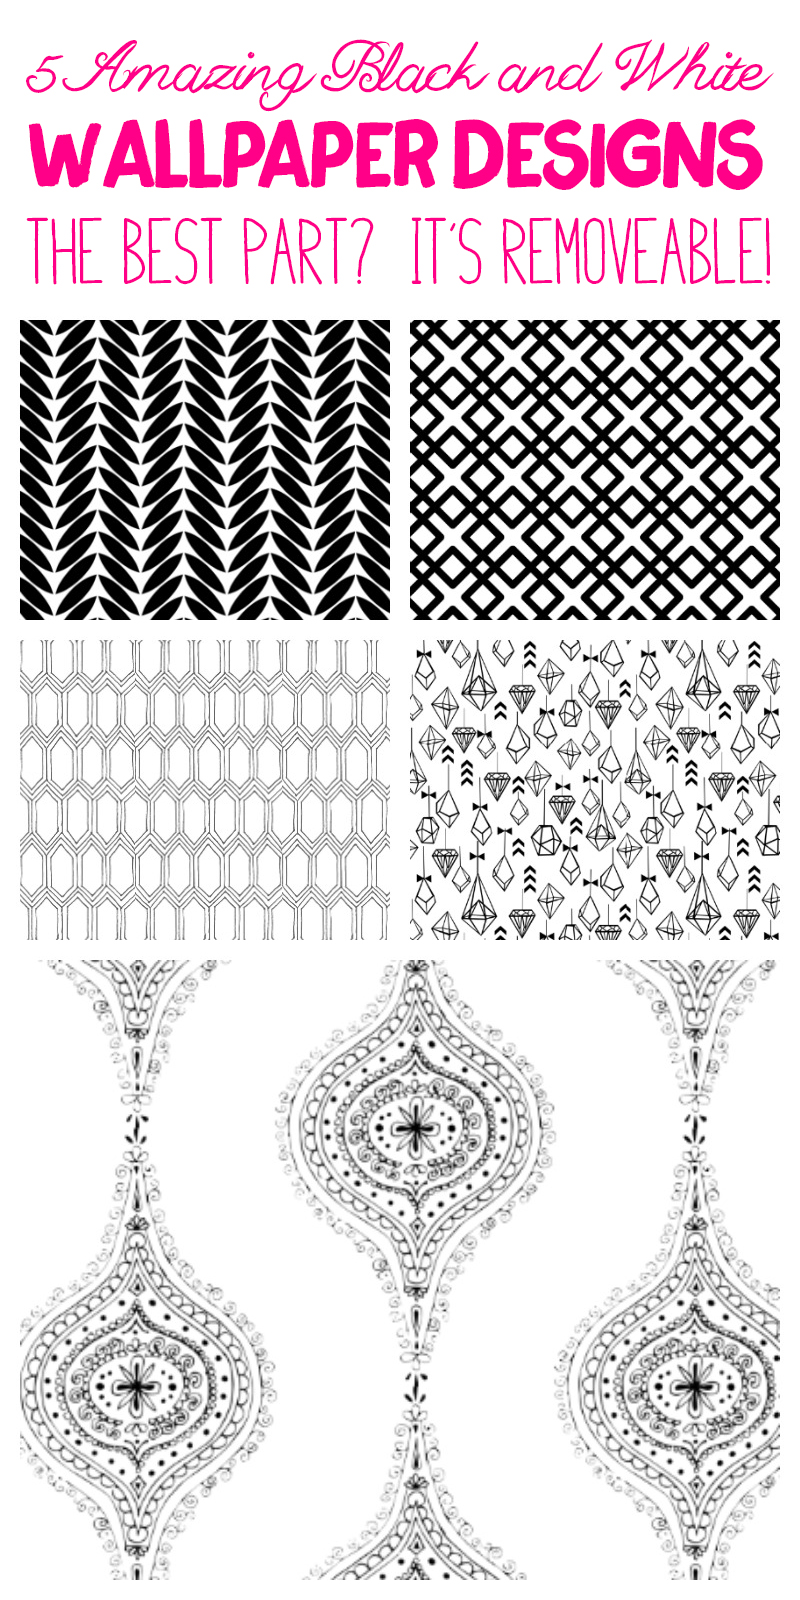 5 Amazing Black and White Wallpaper Designs - this is the best wallpaper! It's removable!